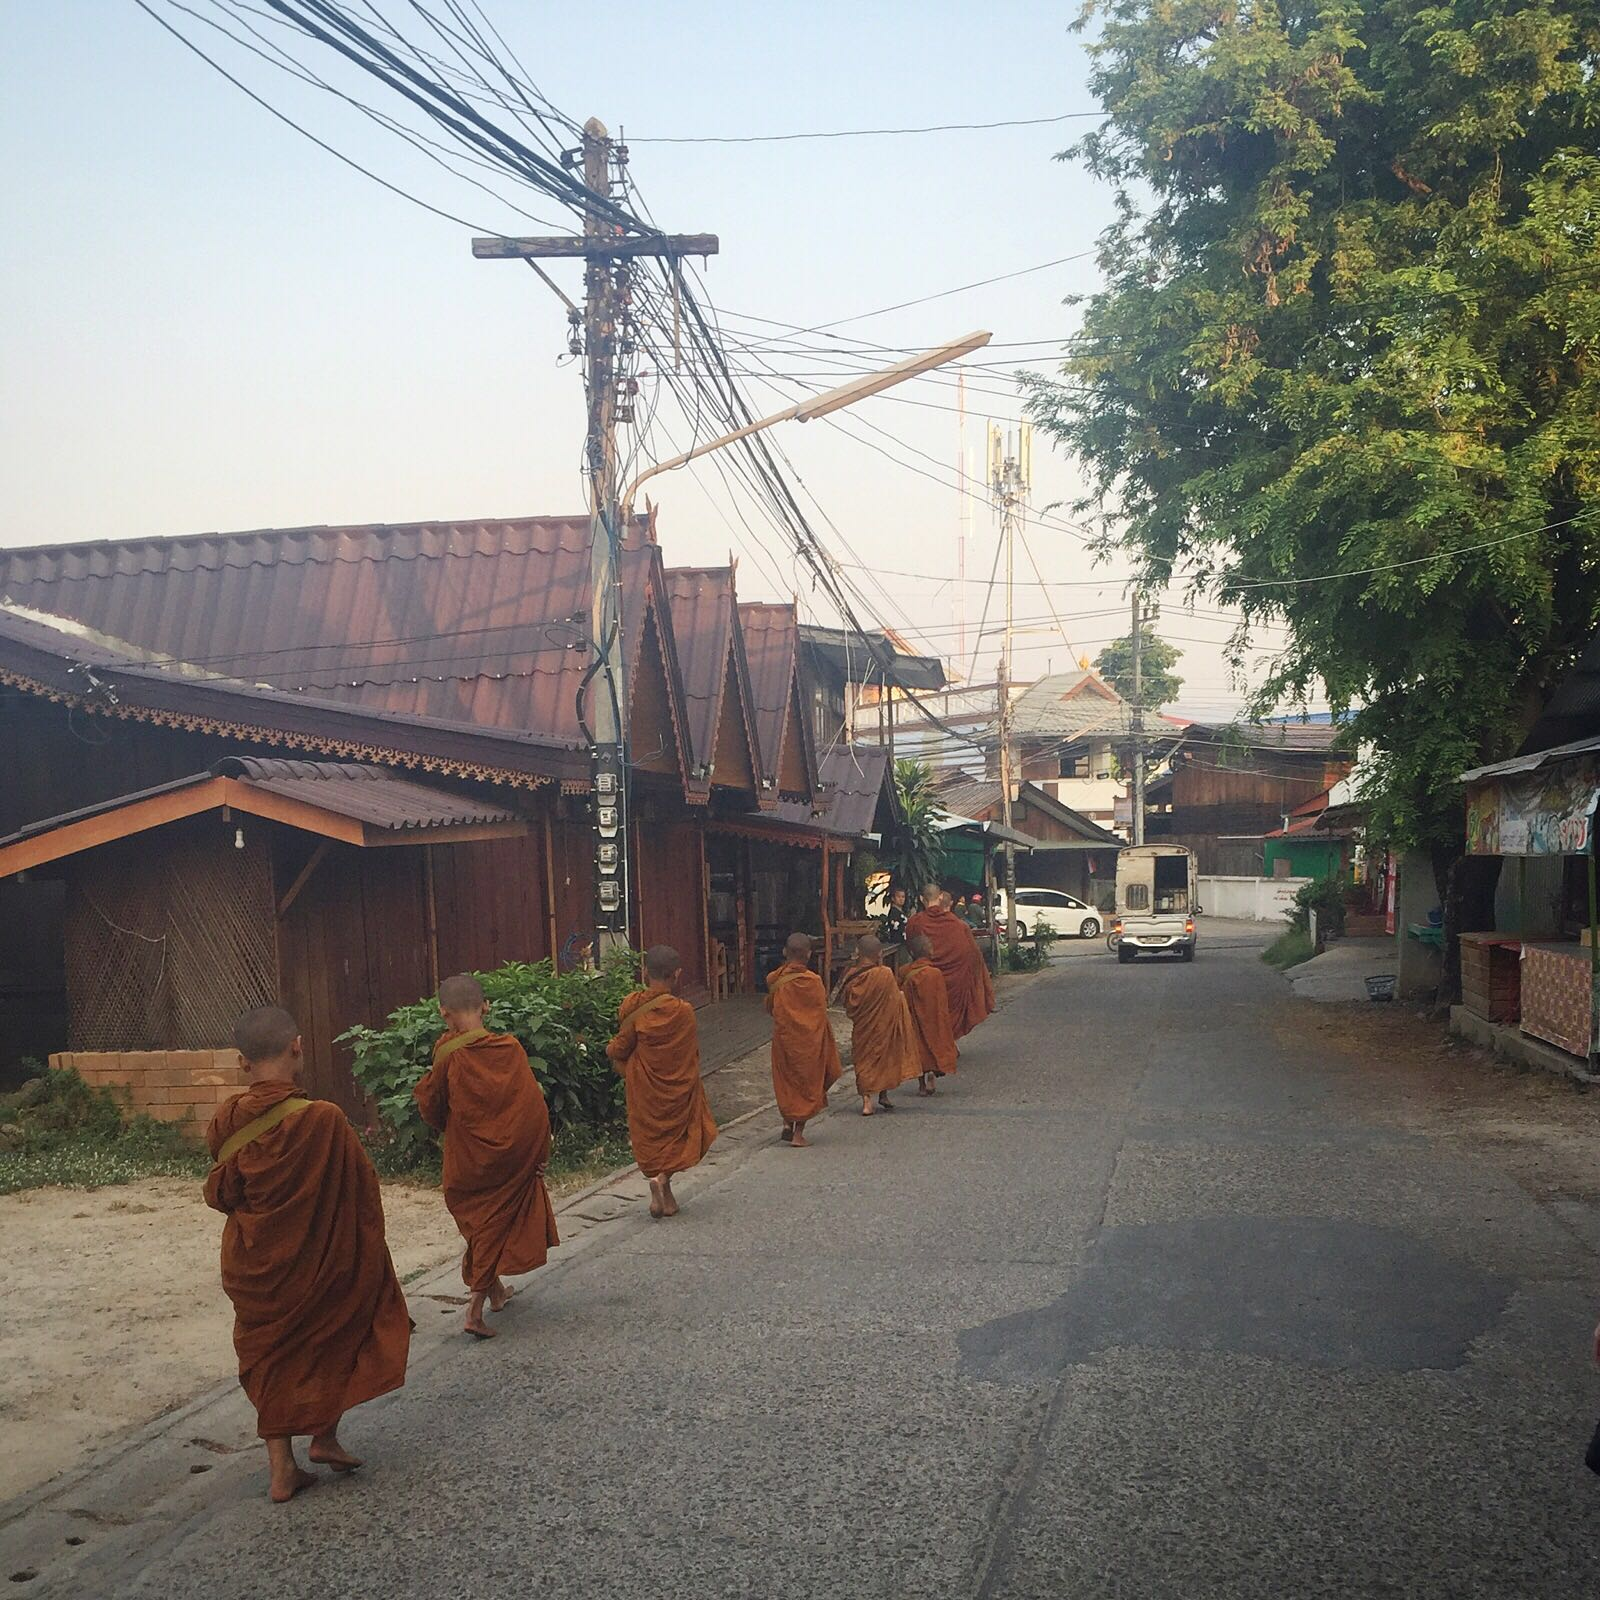 Monks waking through the community getting their daily breakfast from shop owners.